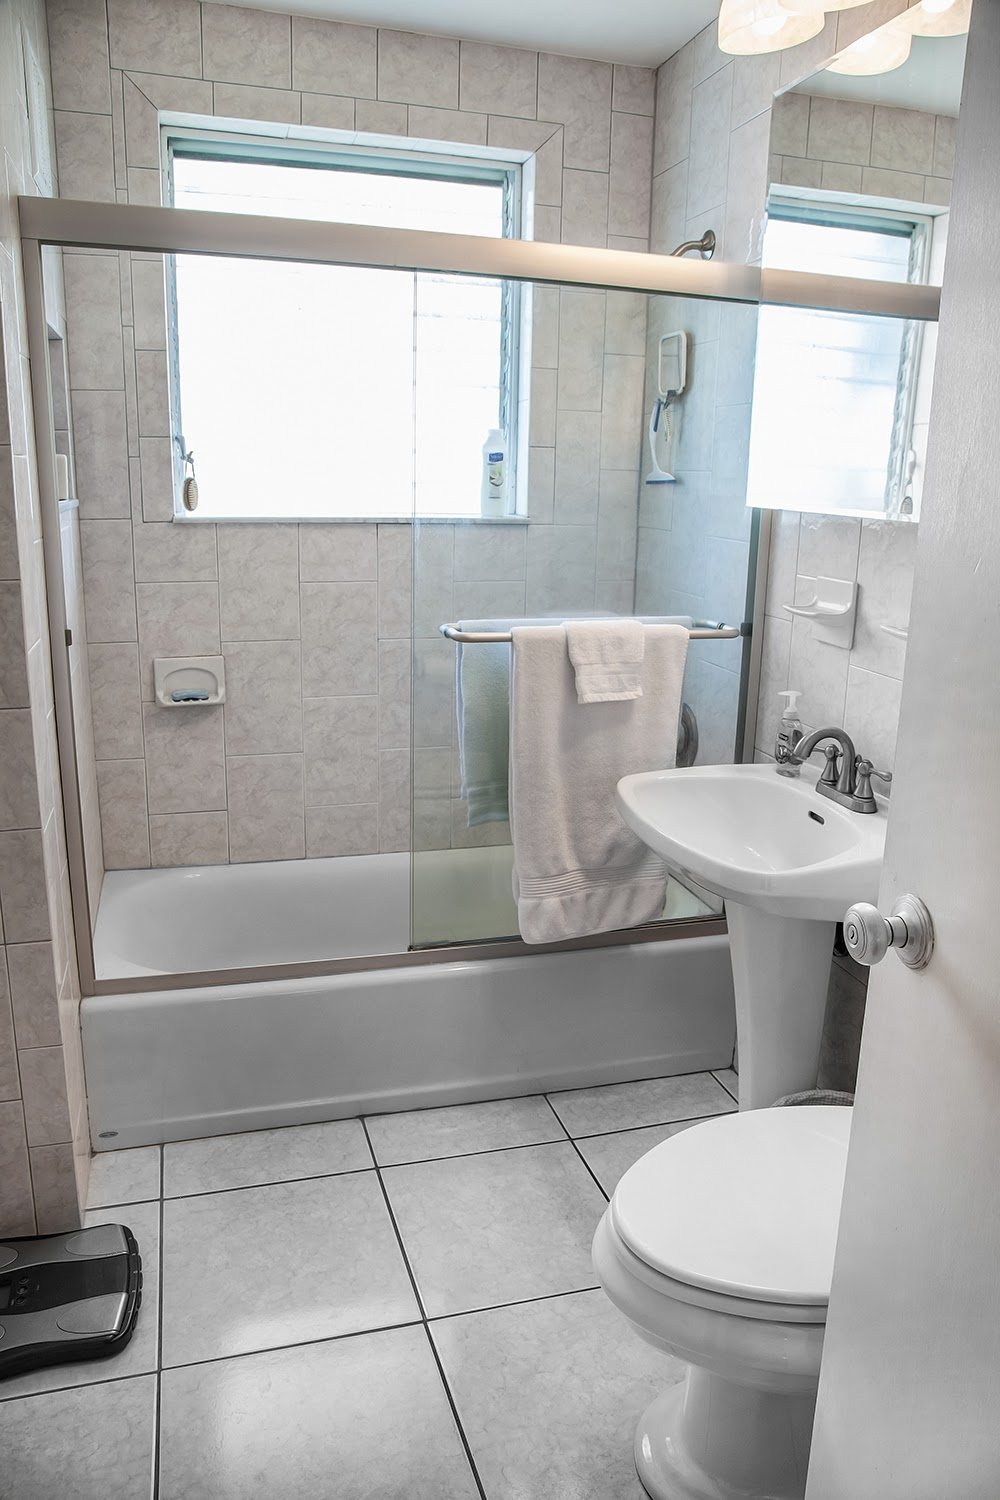 Bath has been recently renovated at 1407 White Street